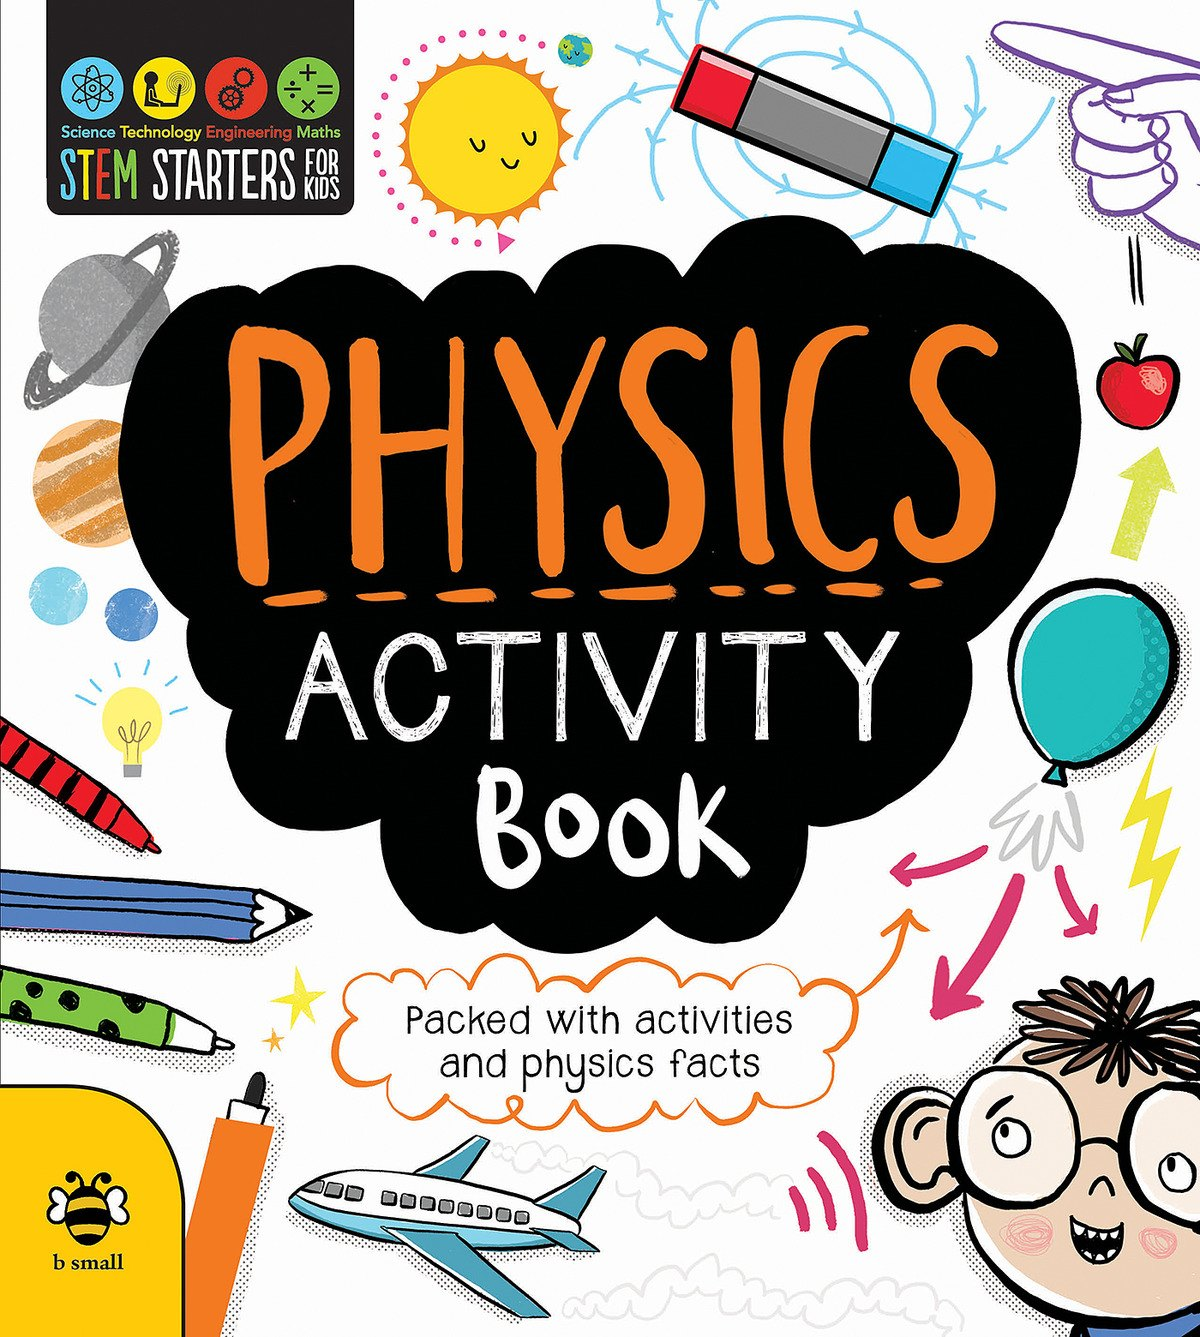 Physics Activity Book Stem